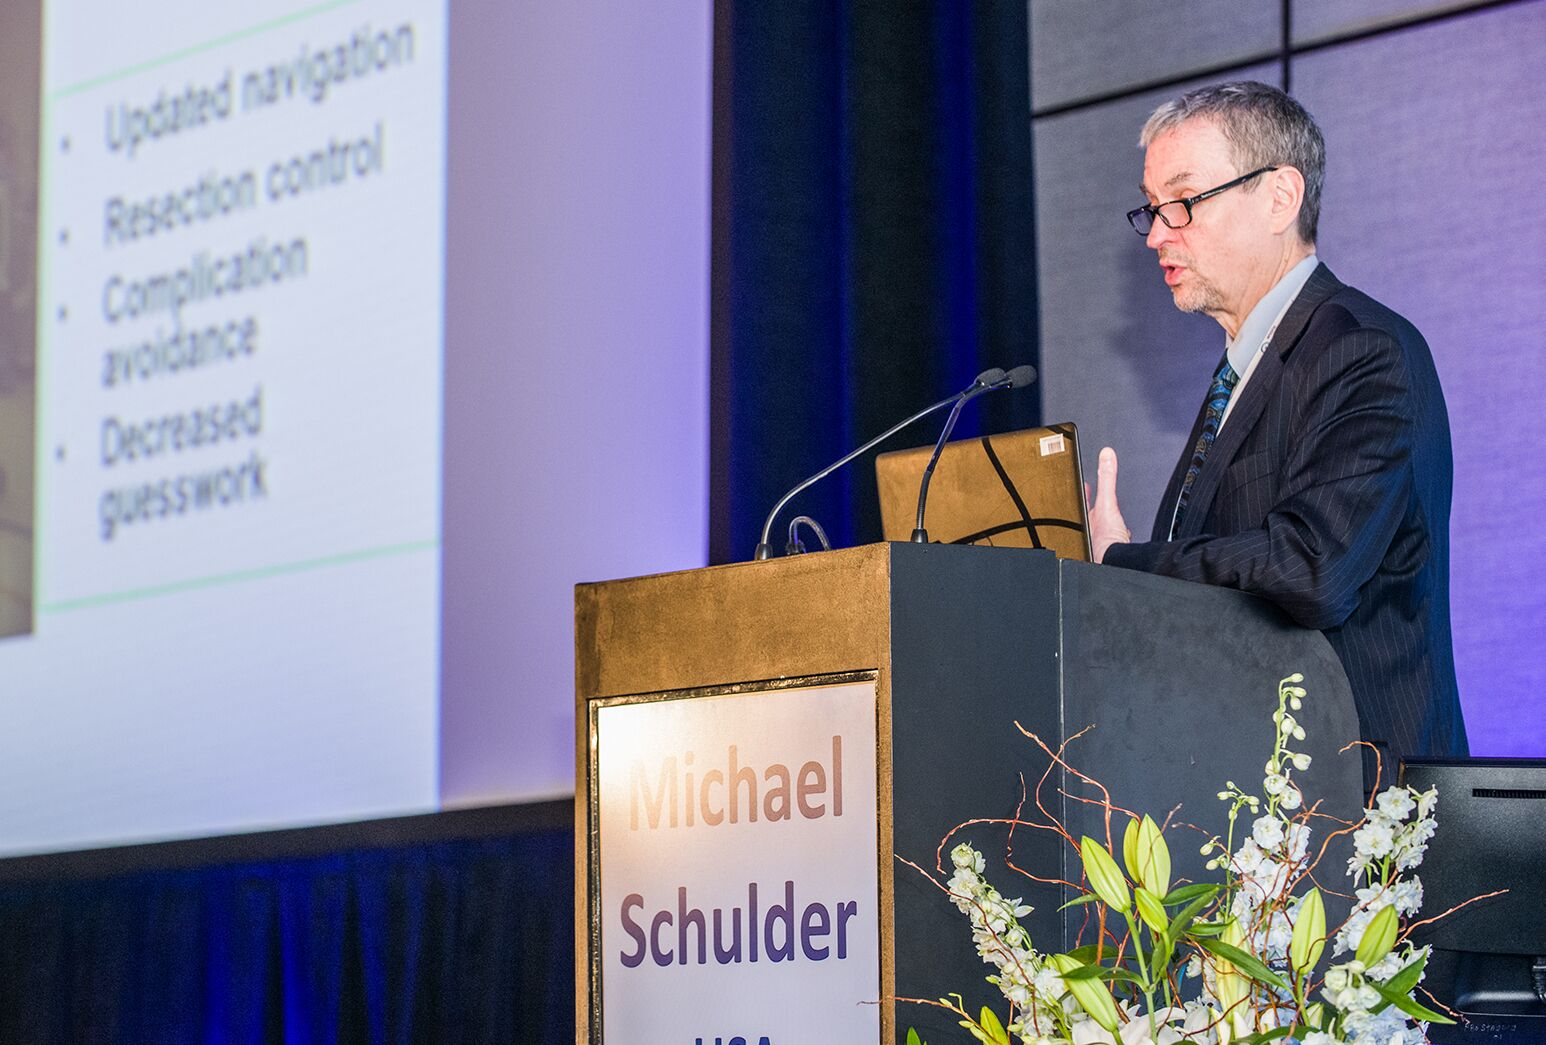 Dr. Michael Schulder spoke at the 18th biennial World Society for Stereotactic and Functional Neurosurgery meeting.